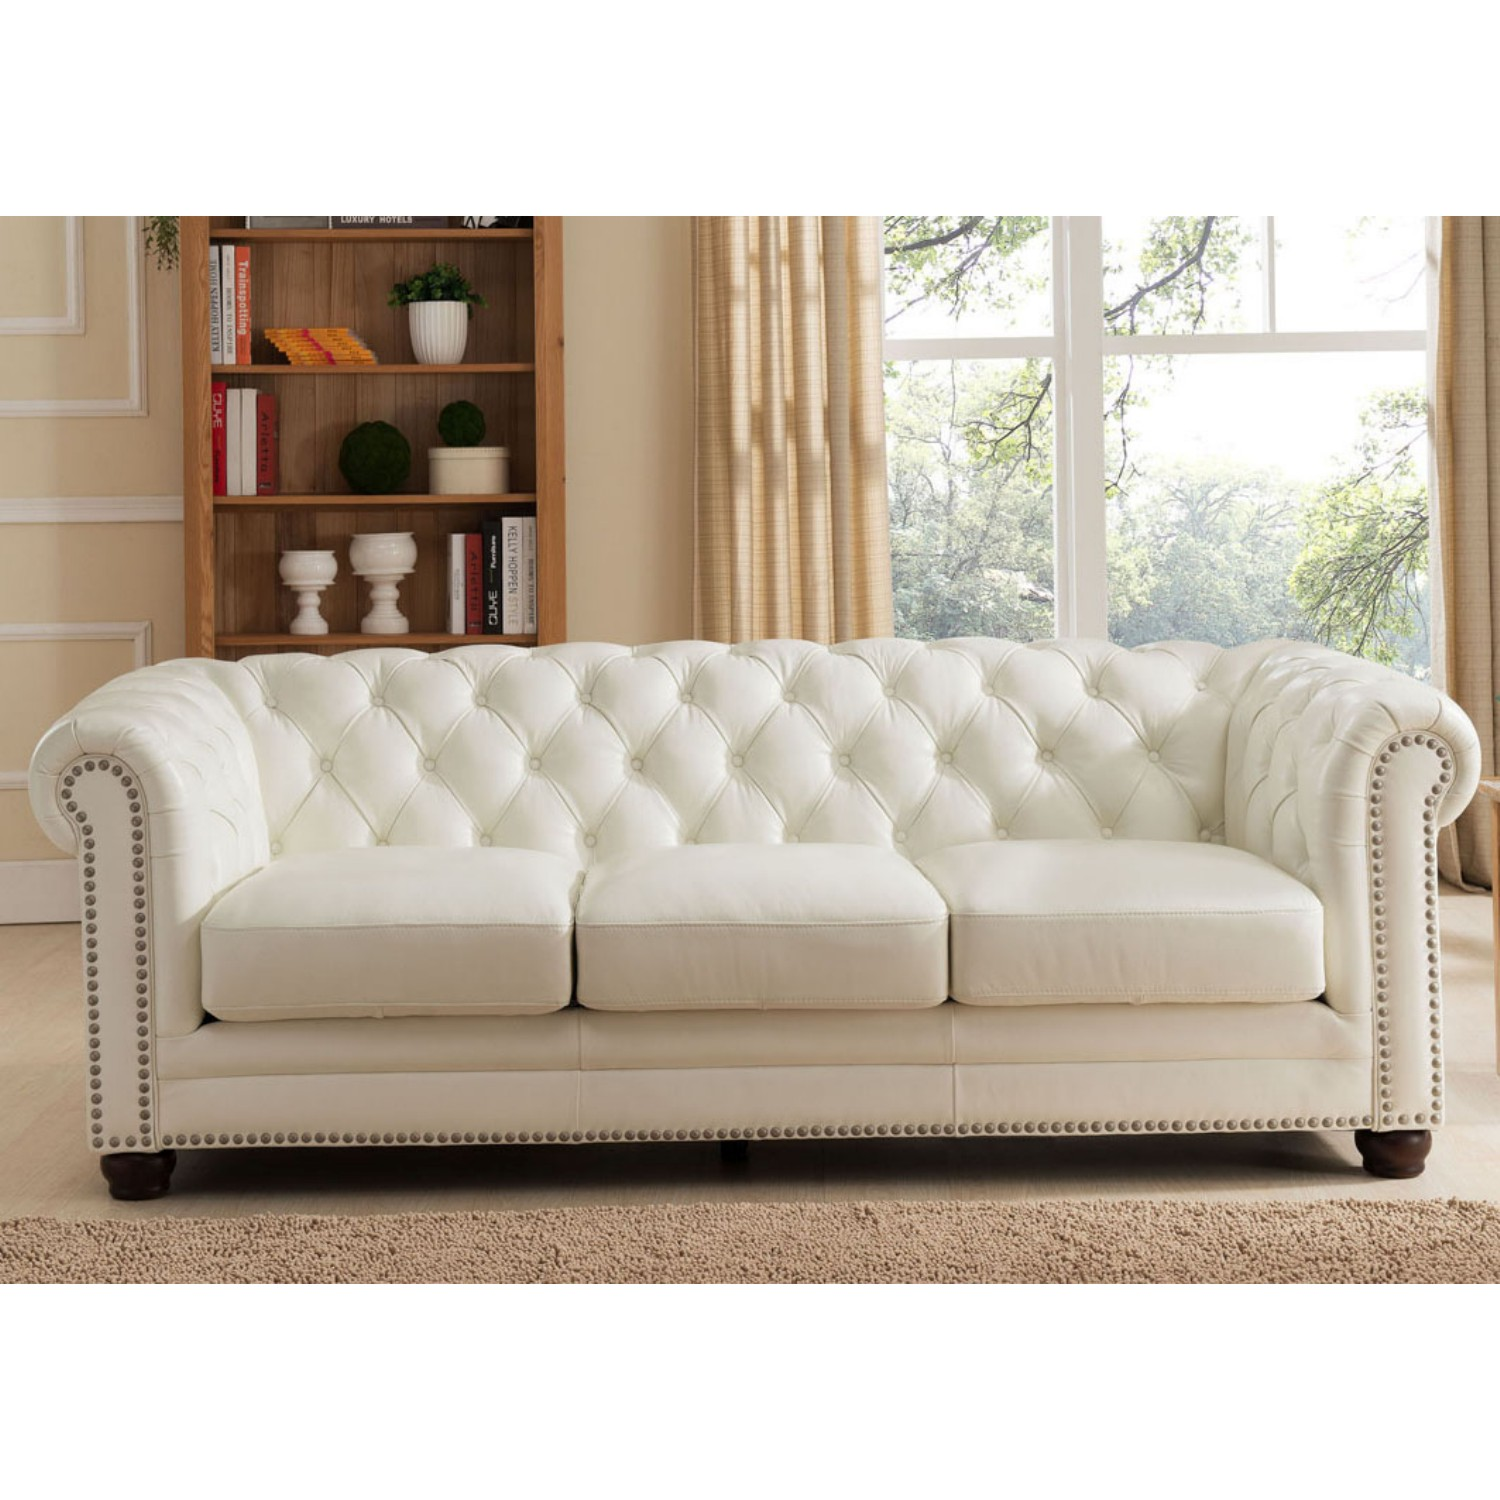 Amax Leather Monacos Monaco 100 Leather Sofa In Diamond Tufted